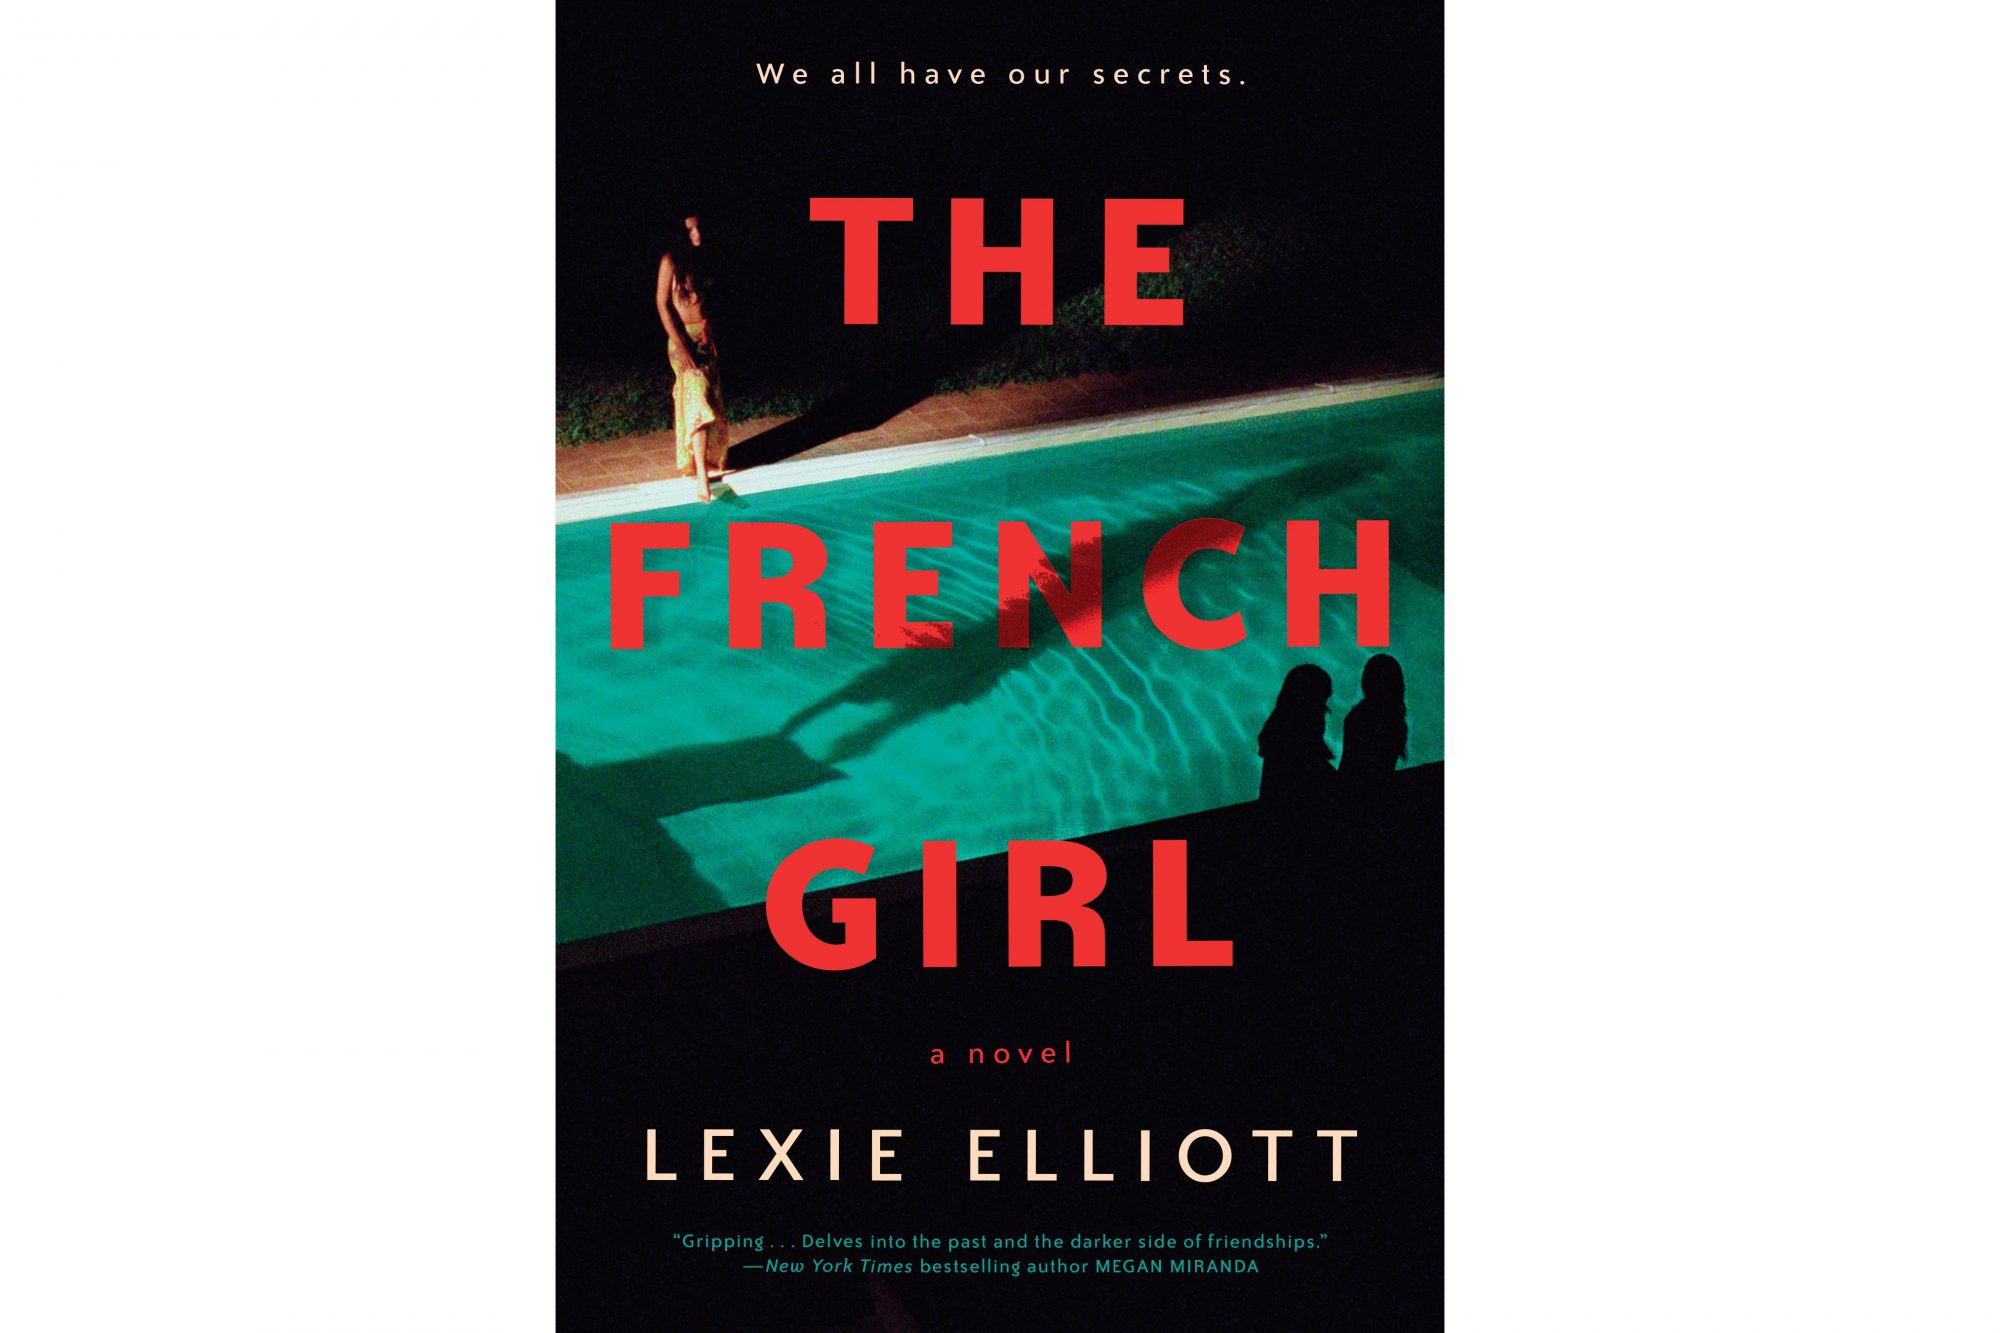 The French Girl, by Lexie Elliott